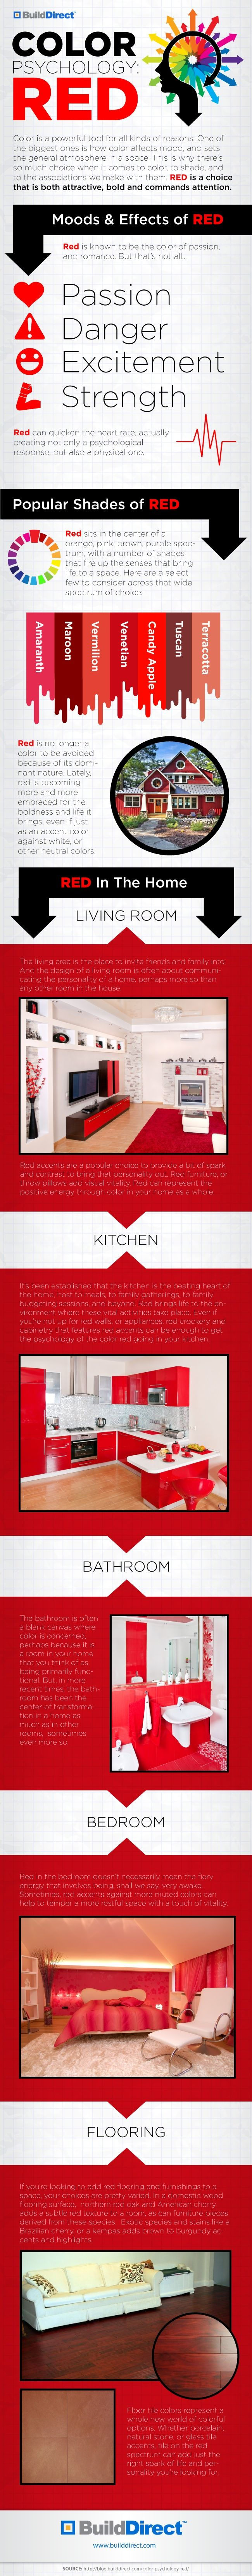 384 best mood board and color scheme images on pinterest color psychology red copy emotional interior design using red